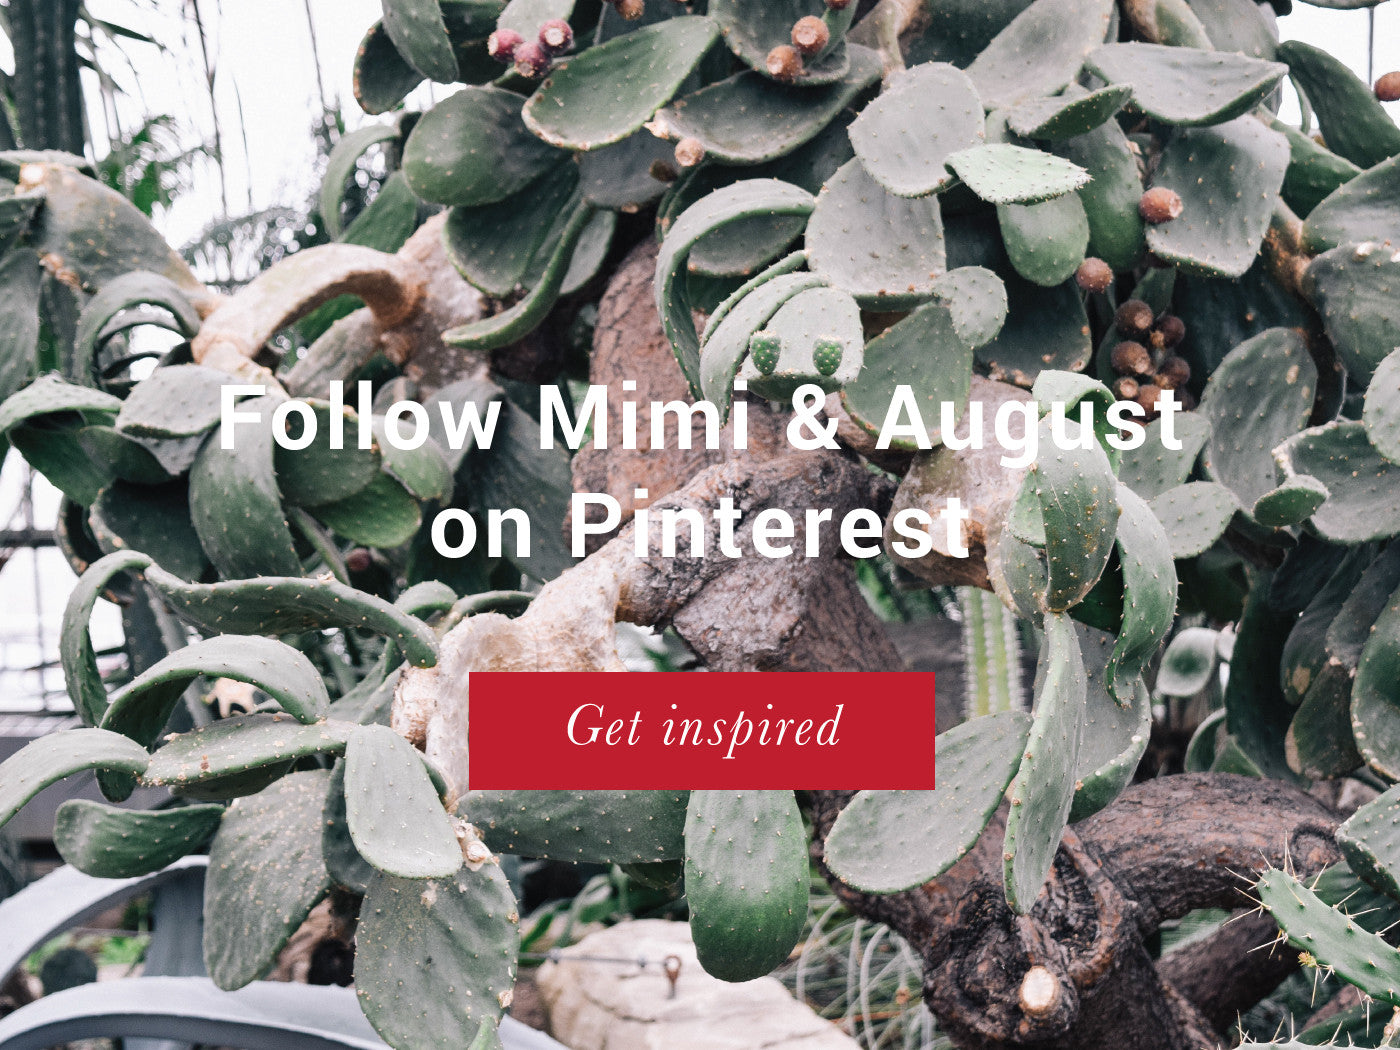 Folow us on Pinterest - Mimi and August